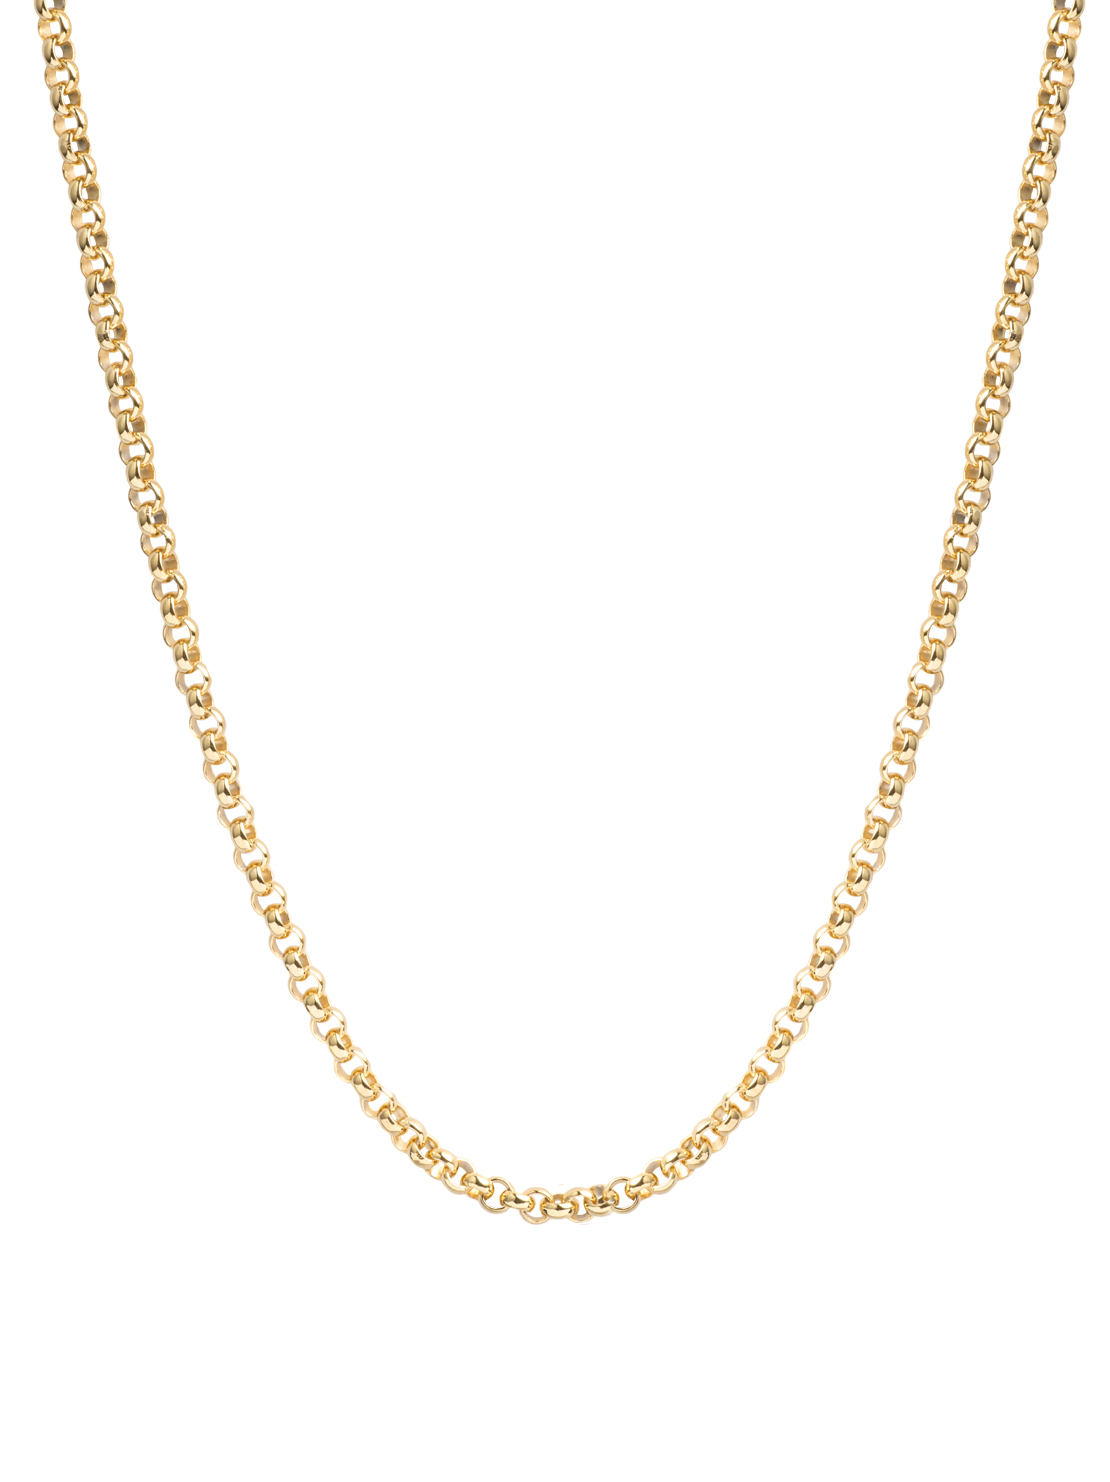 Thick Gold Belcher Chain